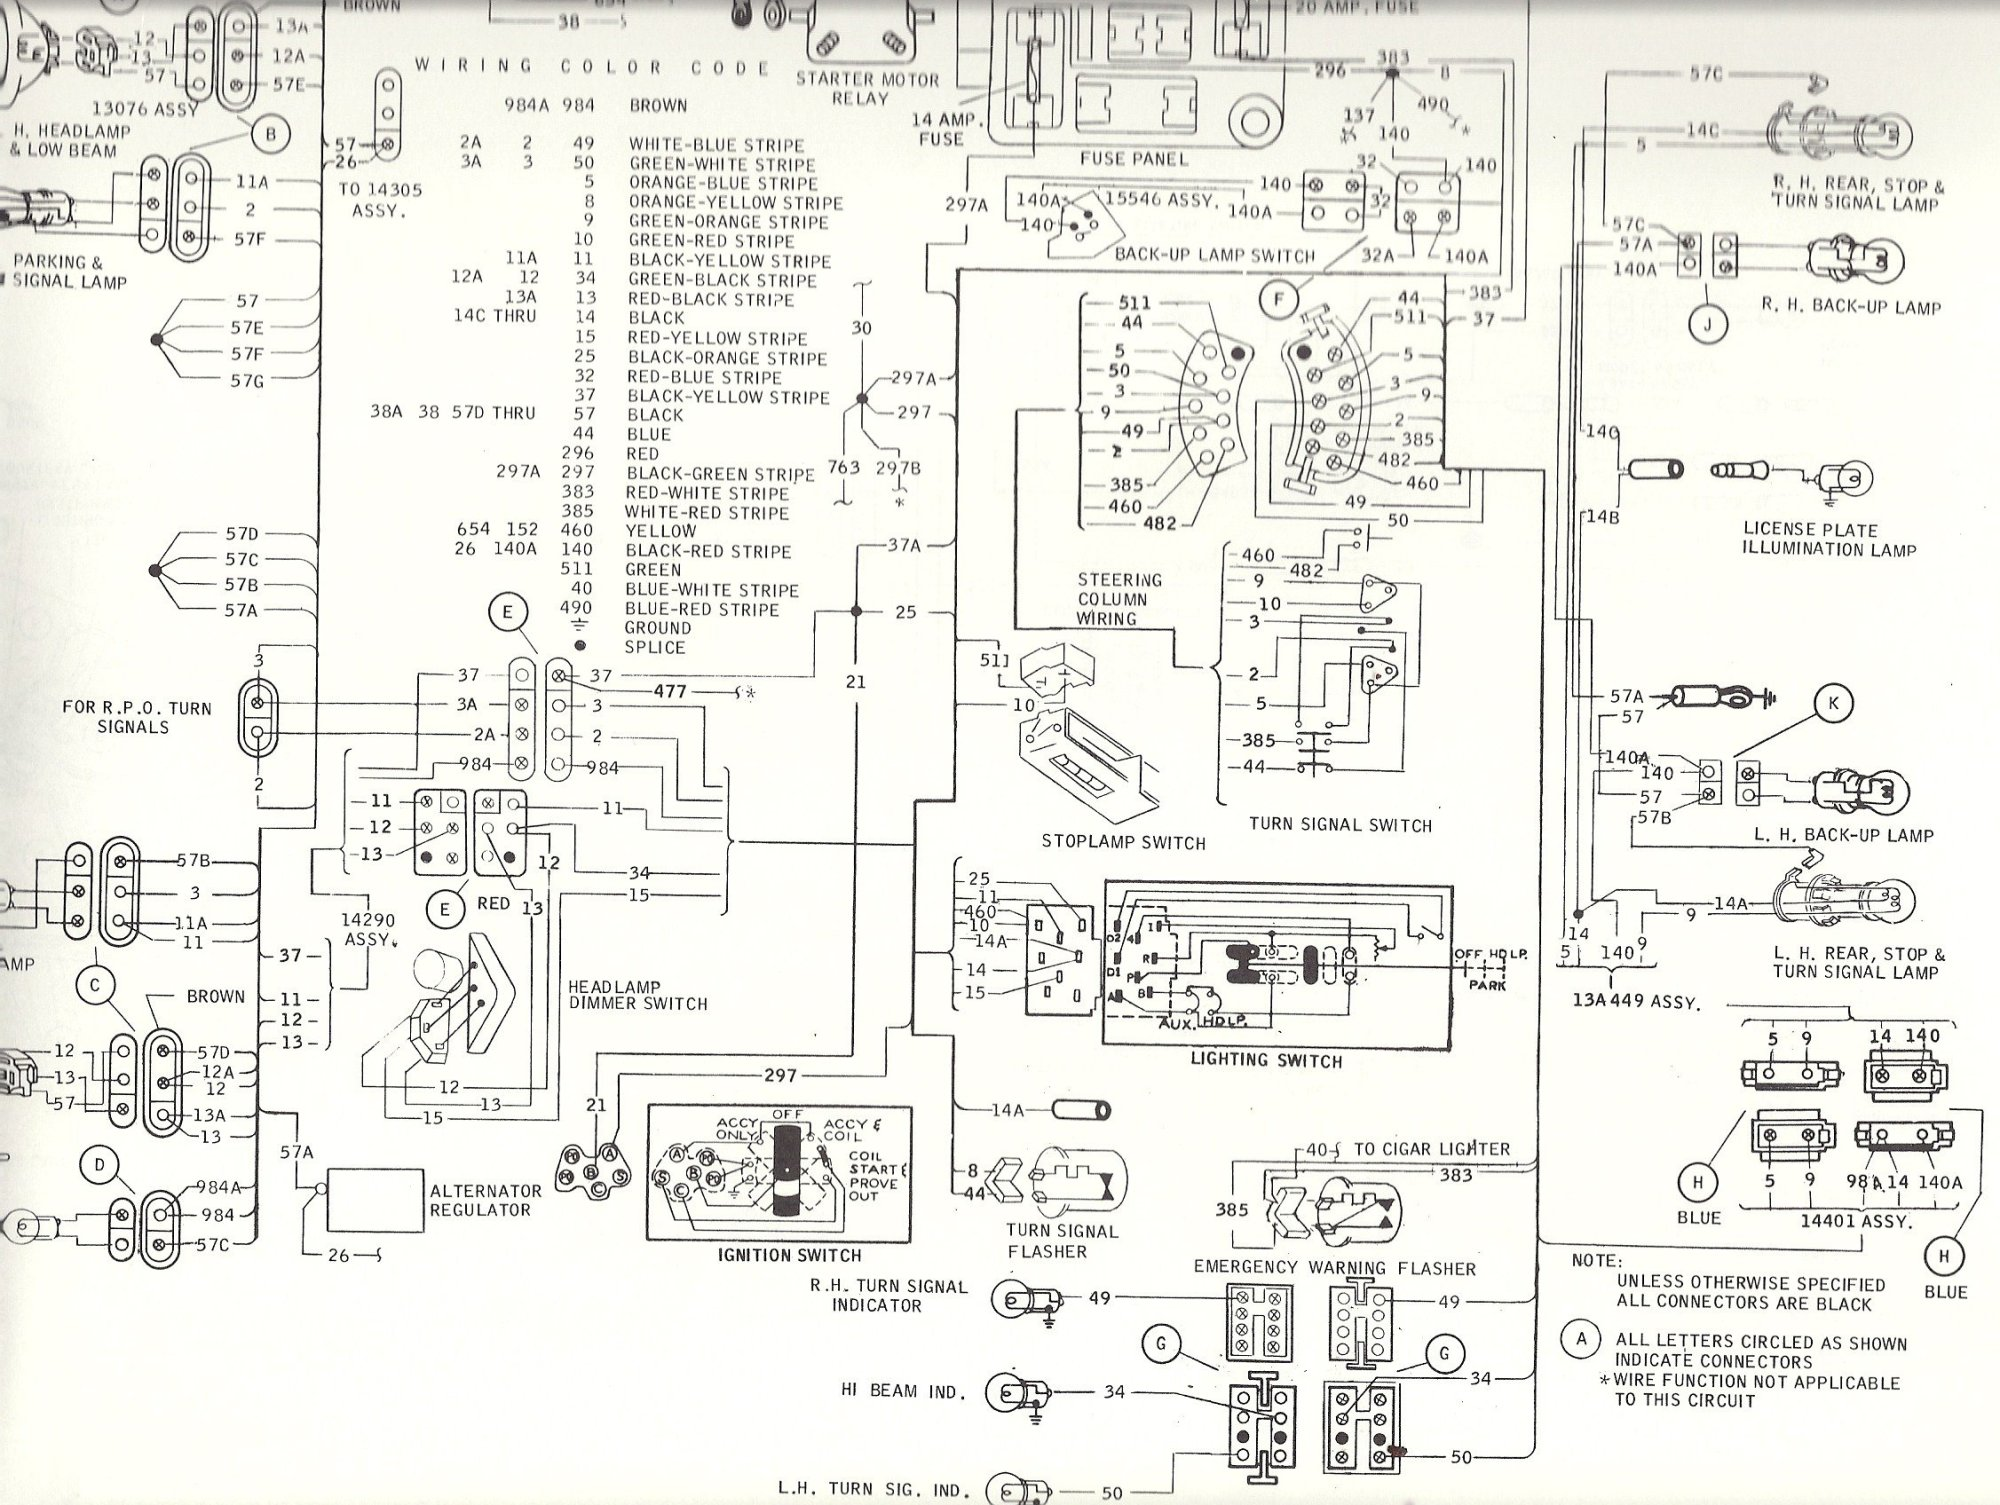 hight resolution of 1968 cougar wiring harness diagram wiring diagram 1969 cougar turn signal wiring diagram wiring diagram schema1968